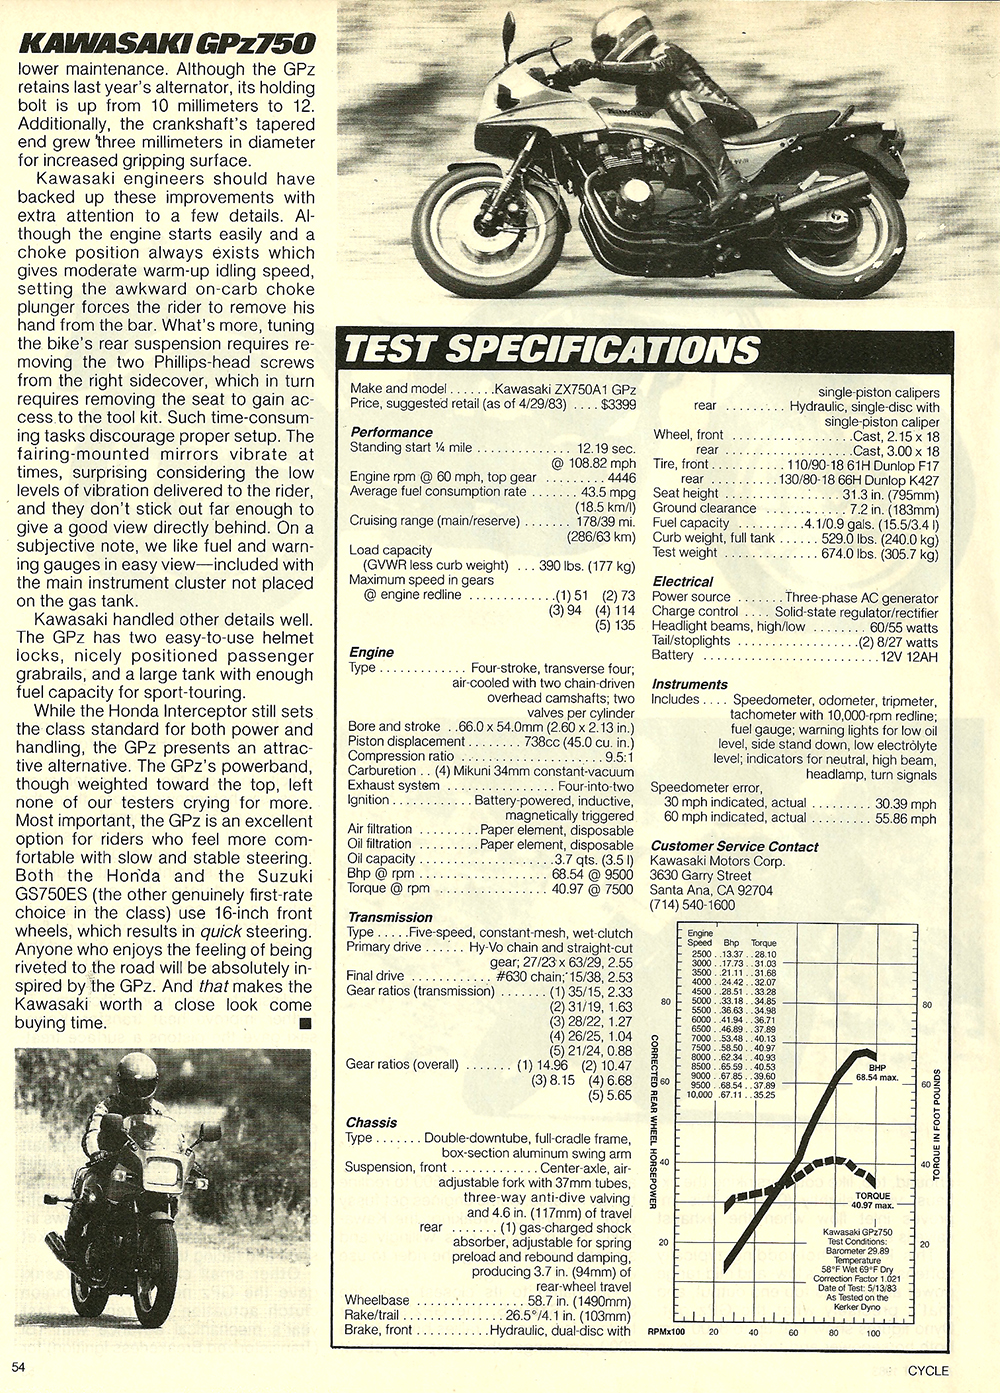 1983 Kawasaki GPz 750 road test 7.jpg